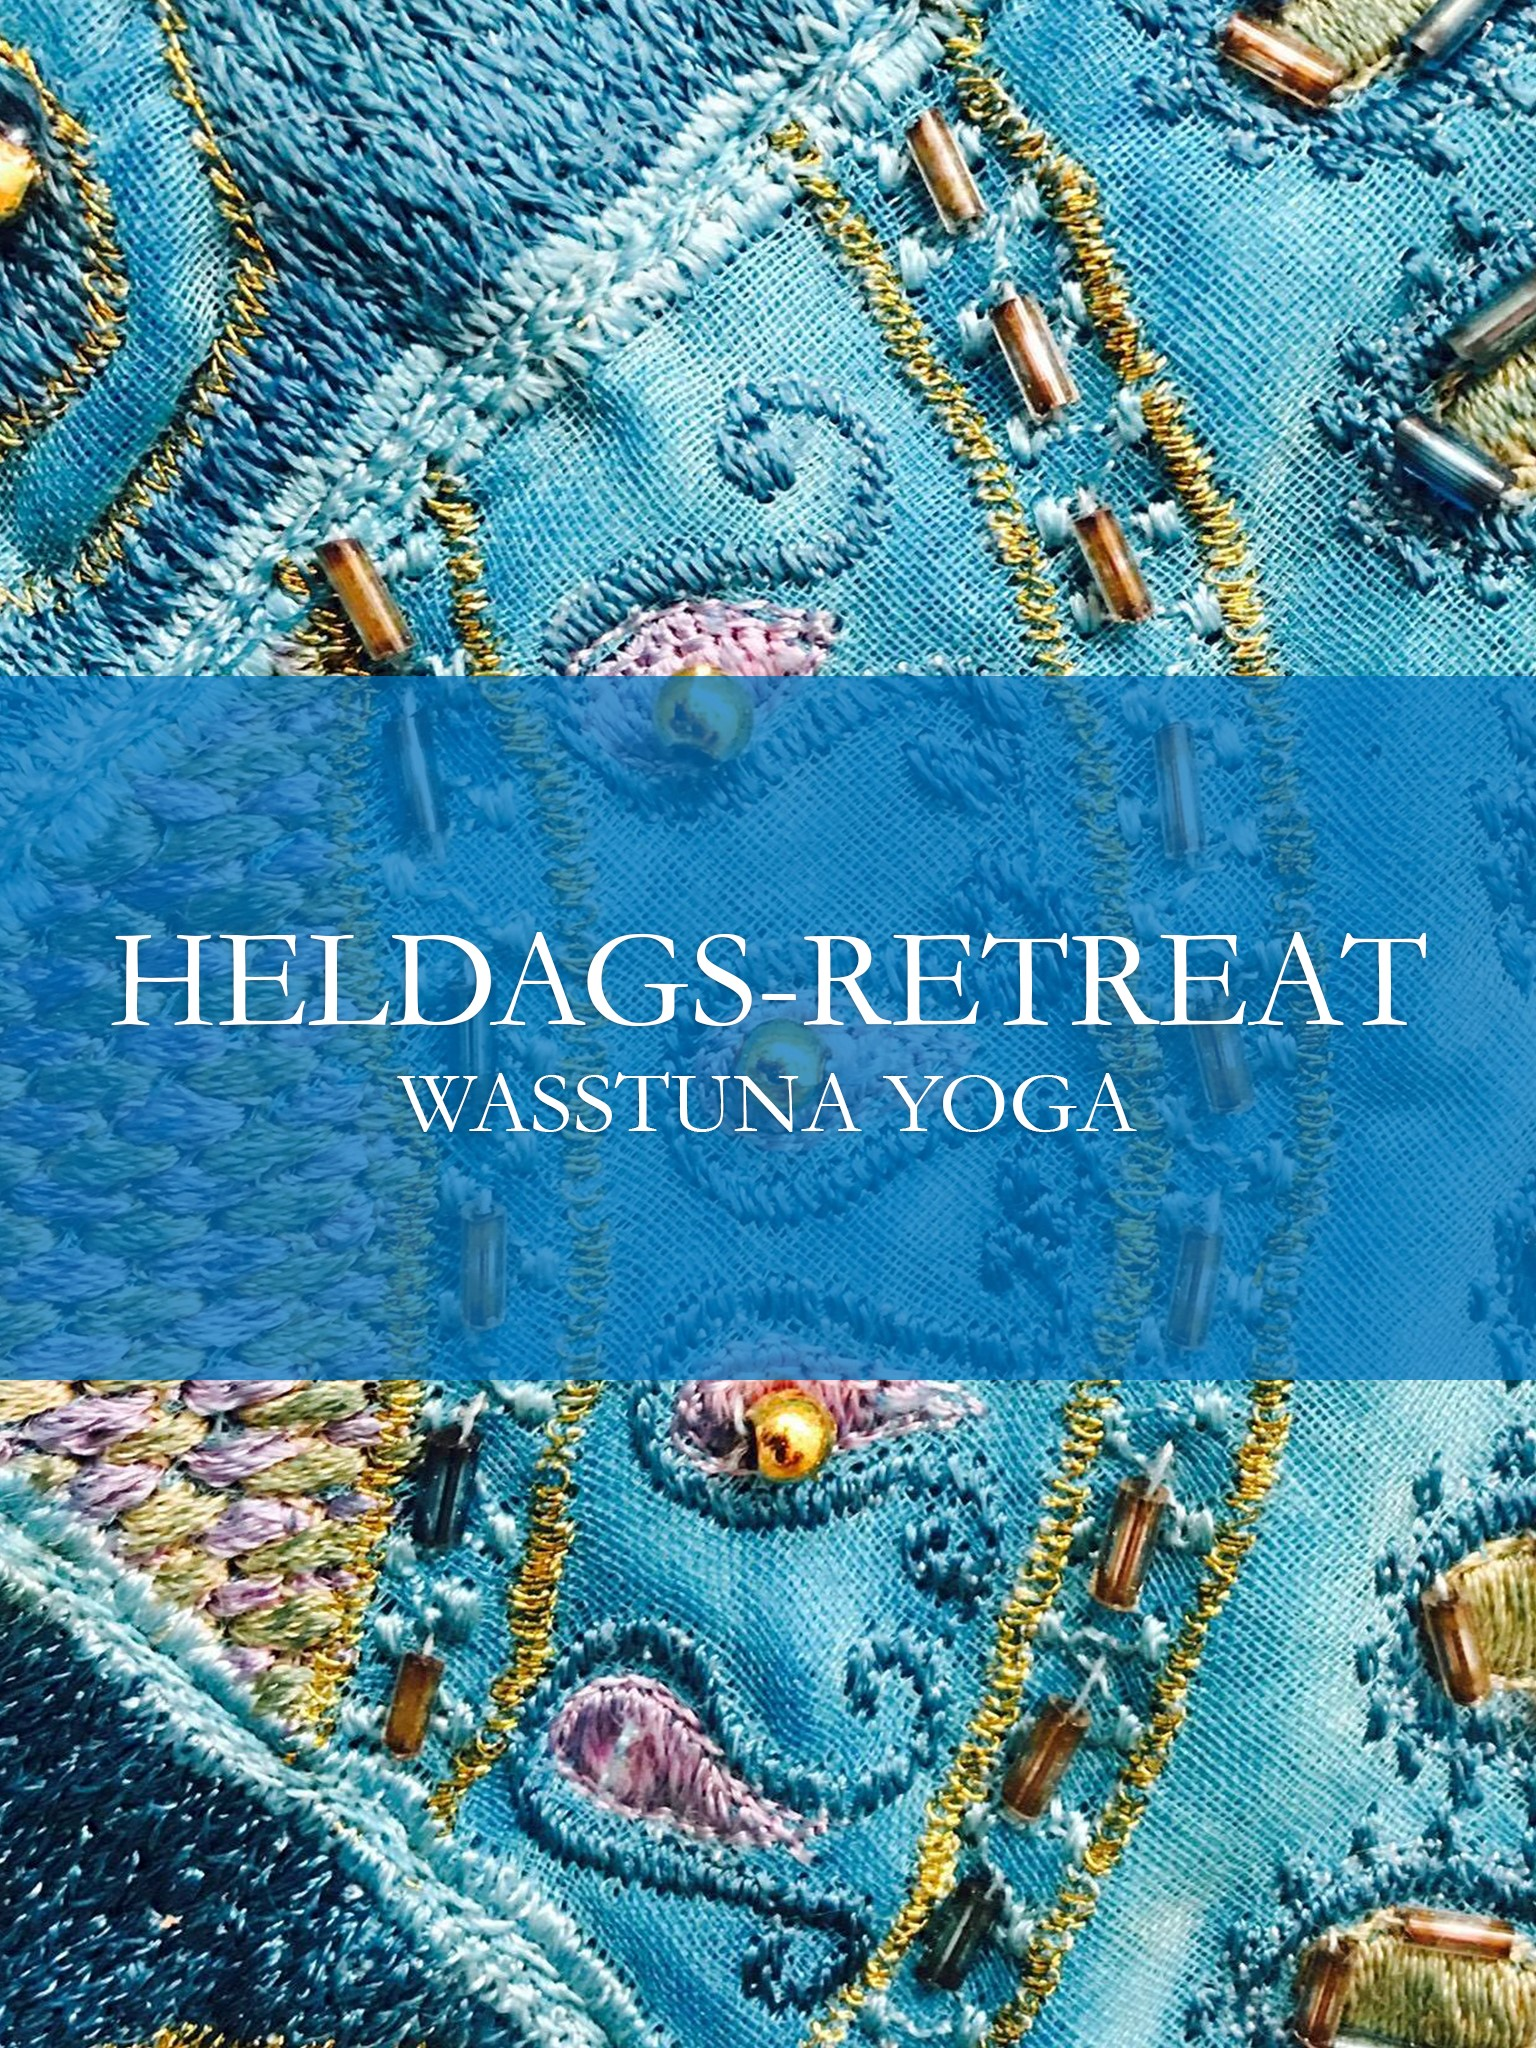 heldags-retreat.jpg